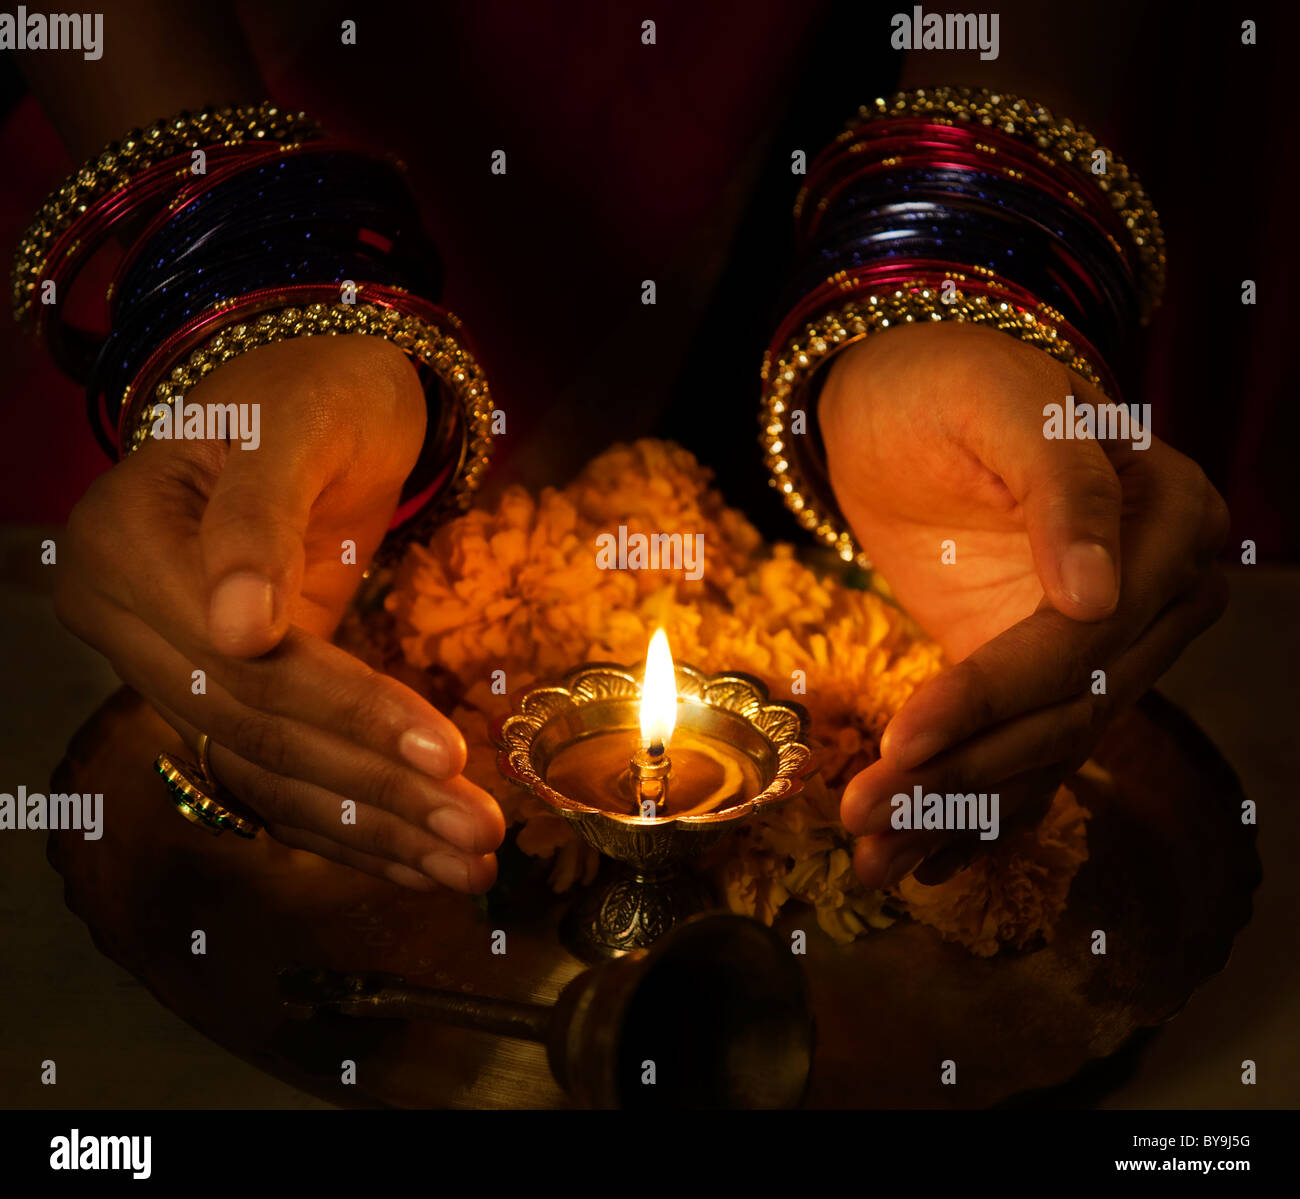 Hands cupped around a diya - Stock Image